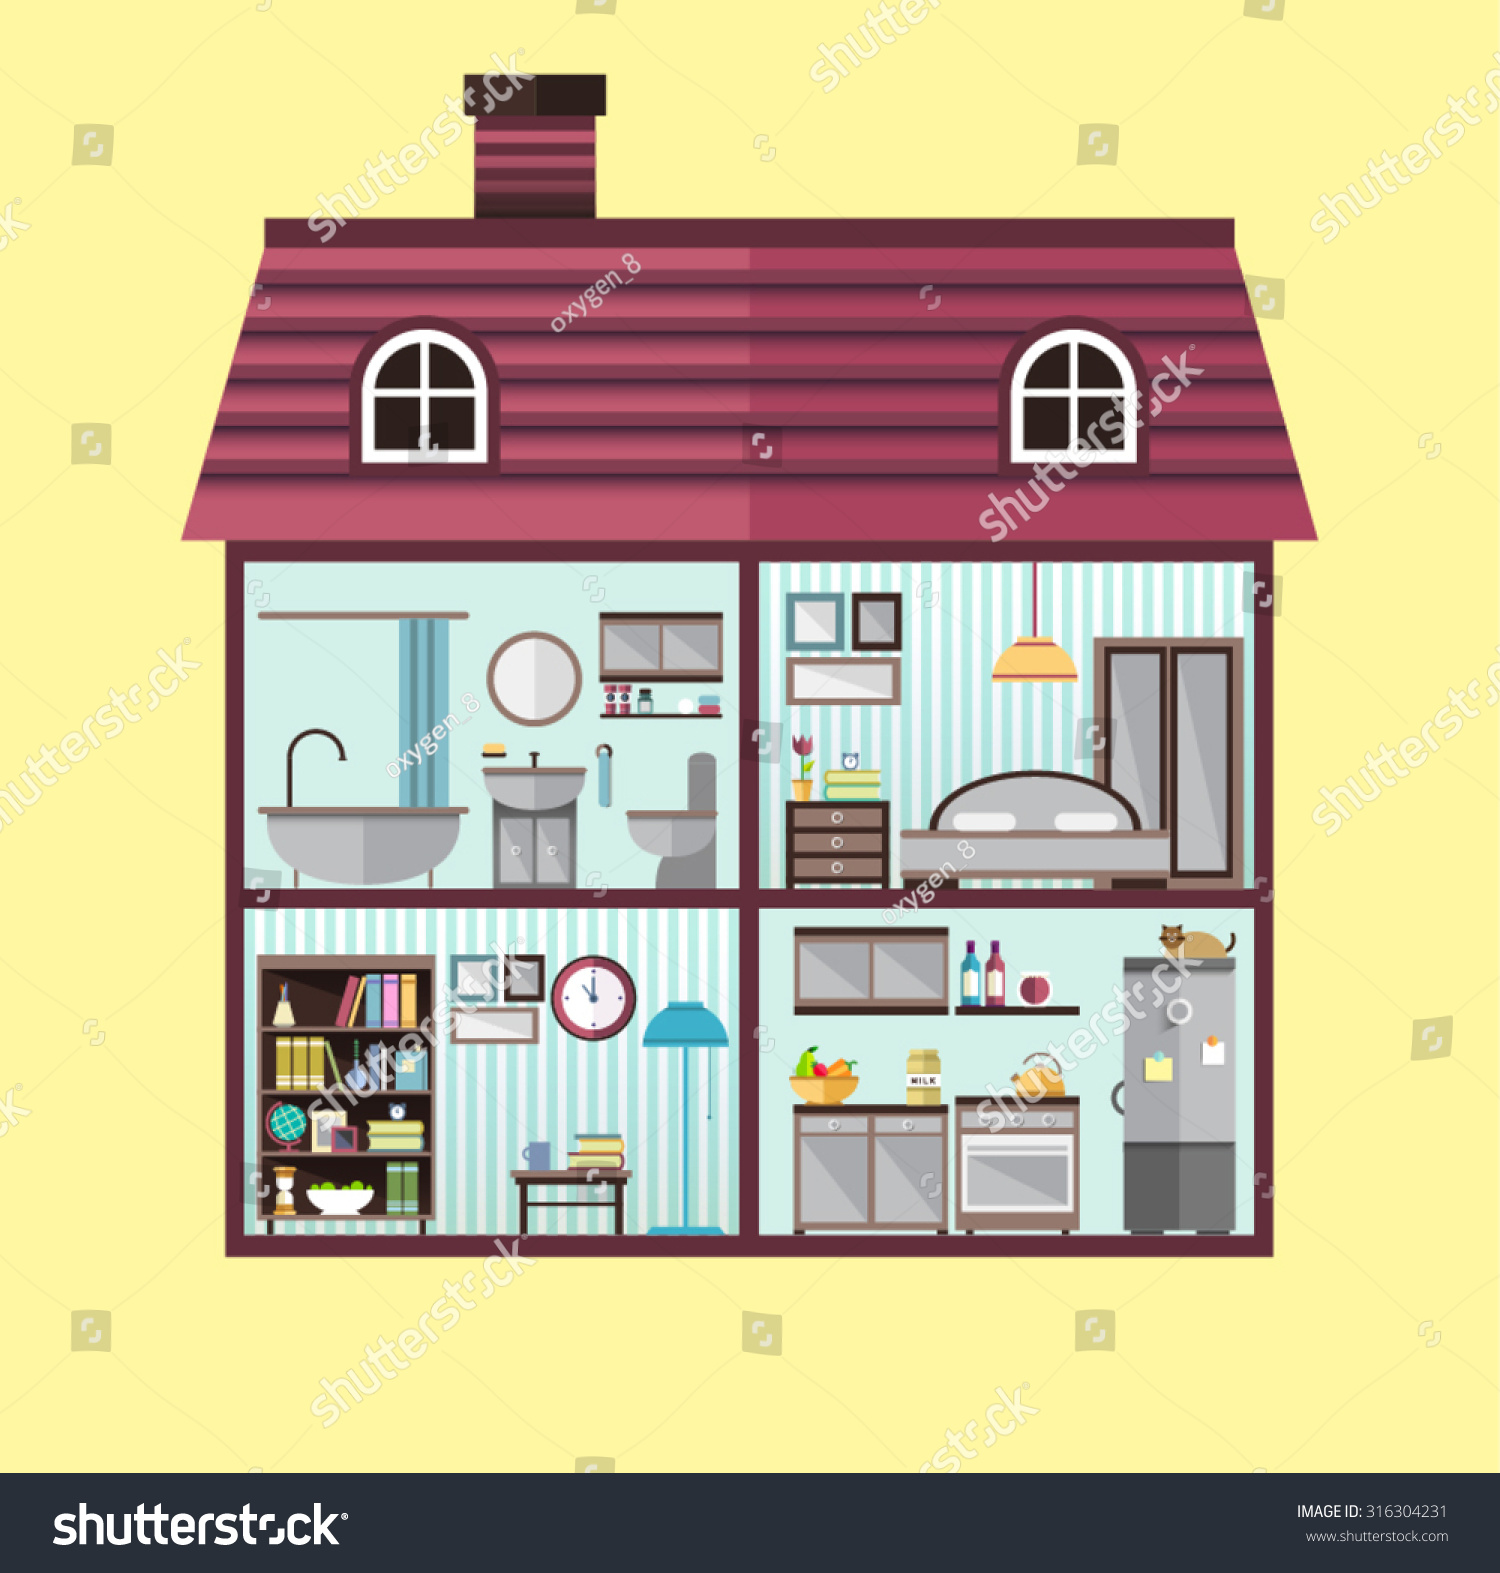 House cut detailed modern house interior stock vector for House interior images